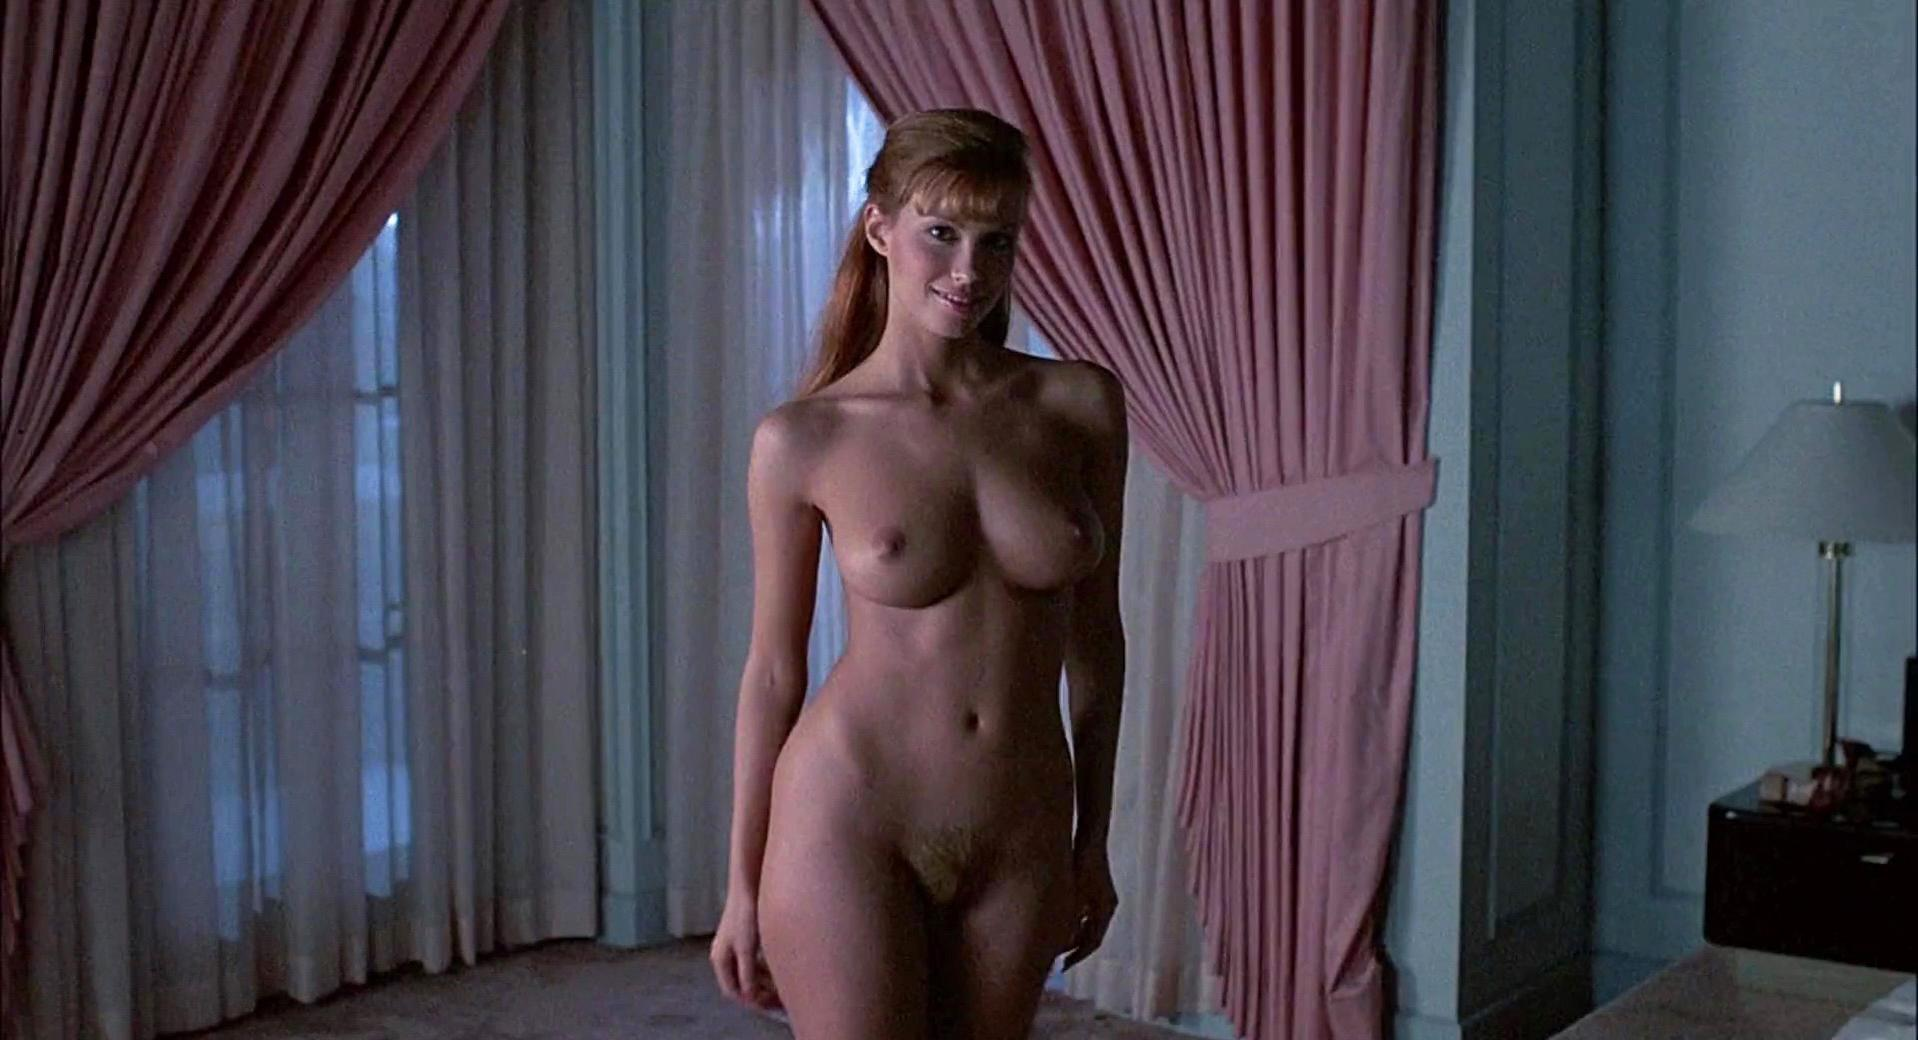 Monique Gabrielle nude - Bachelor Party (1984)